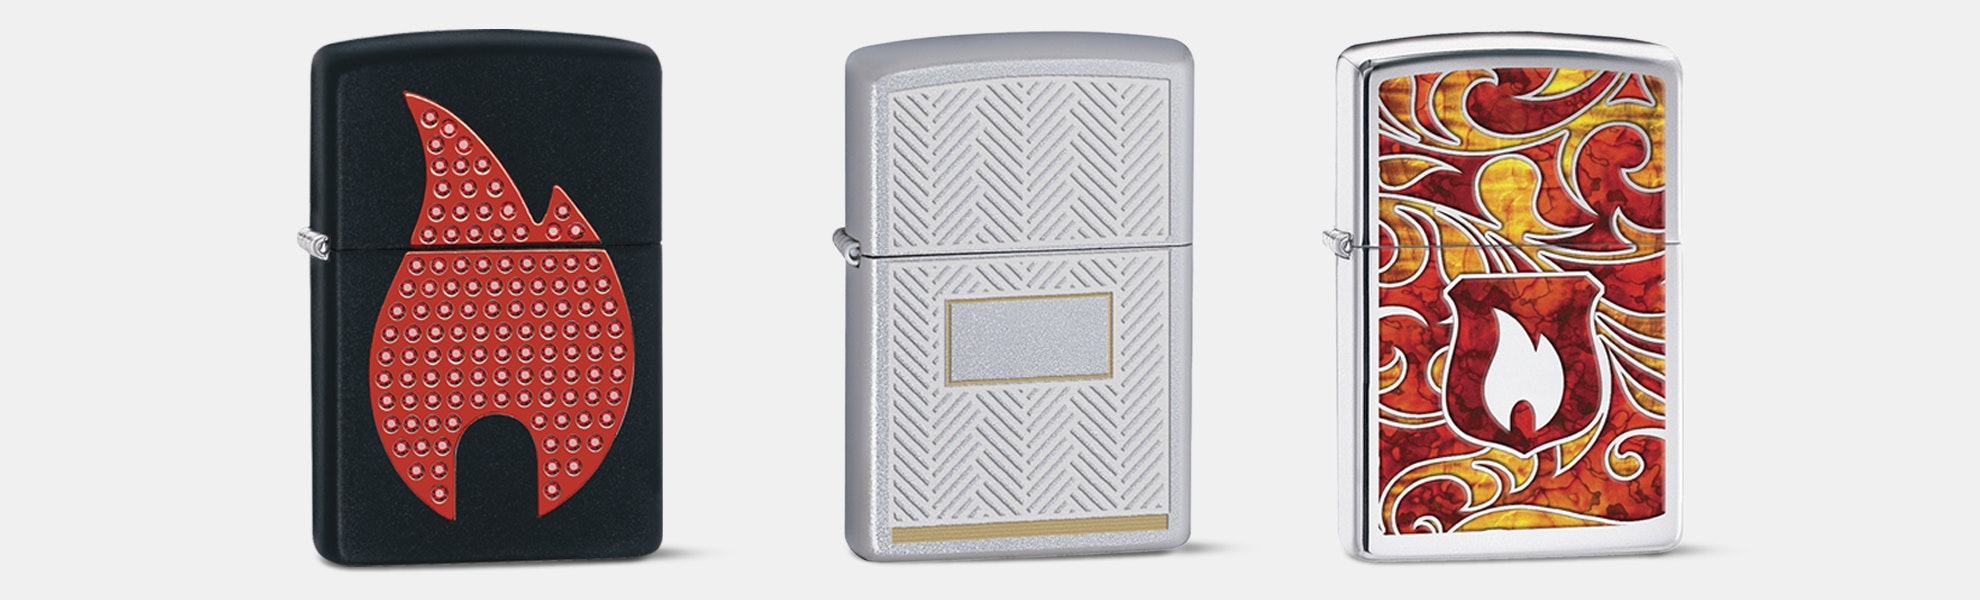 Zippo Lighters: Classic Collection